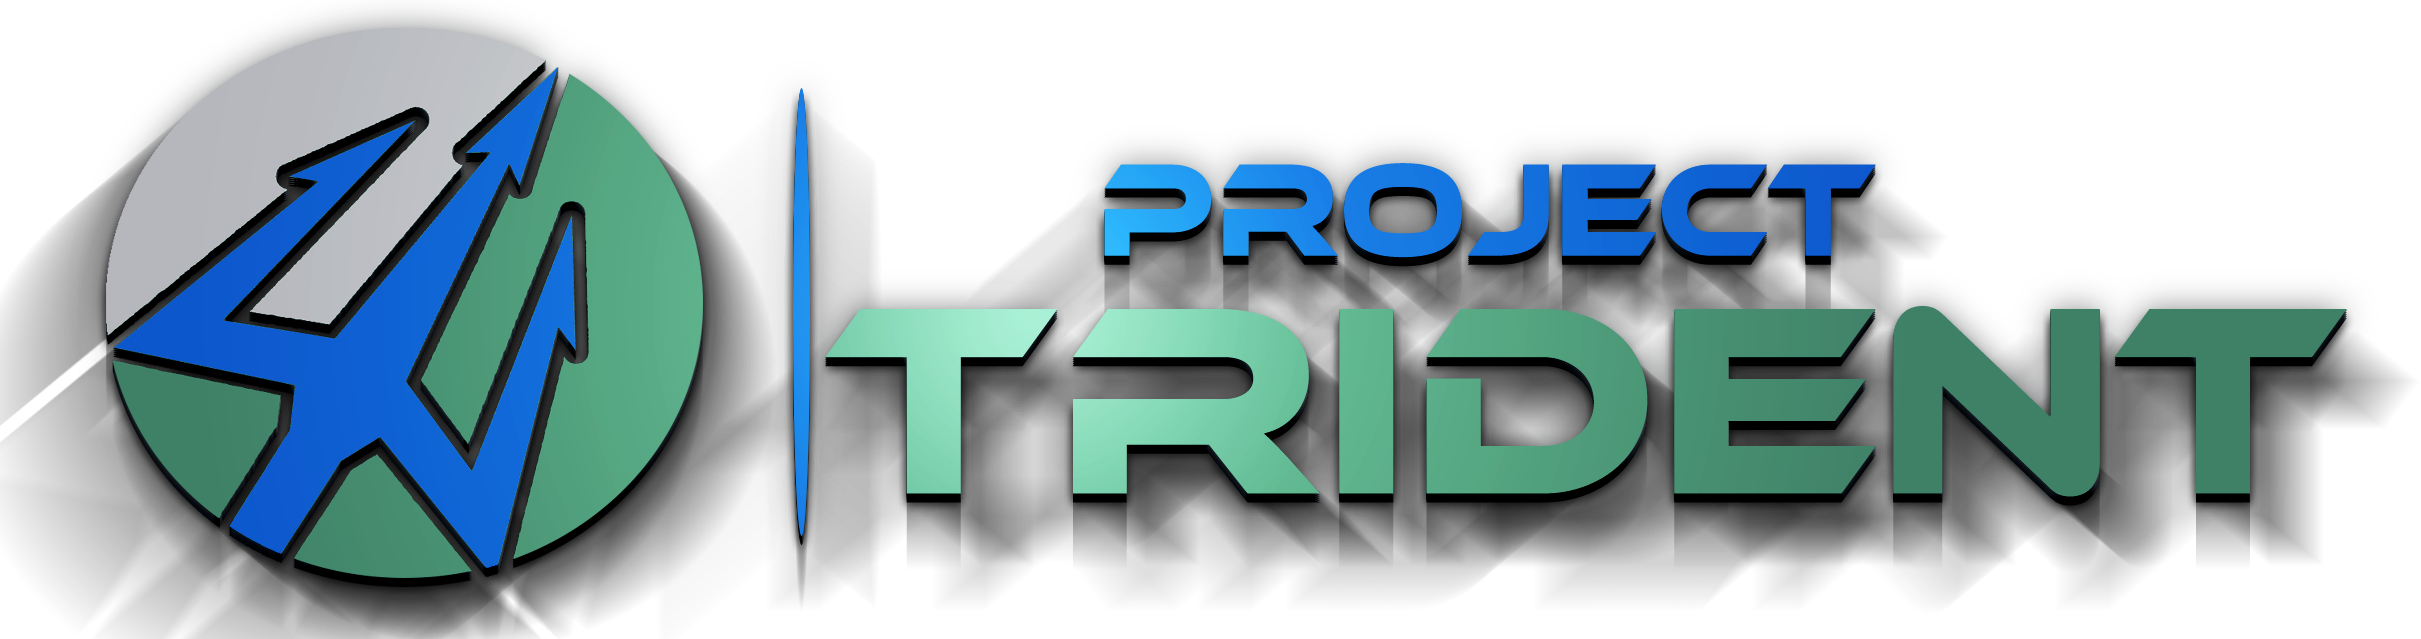 Project Trident